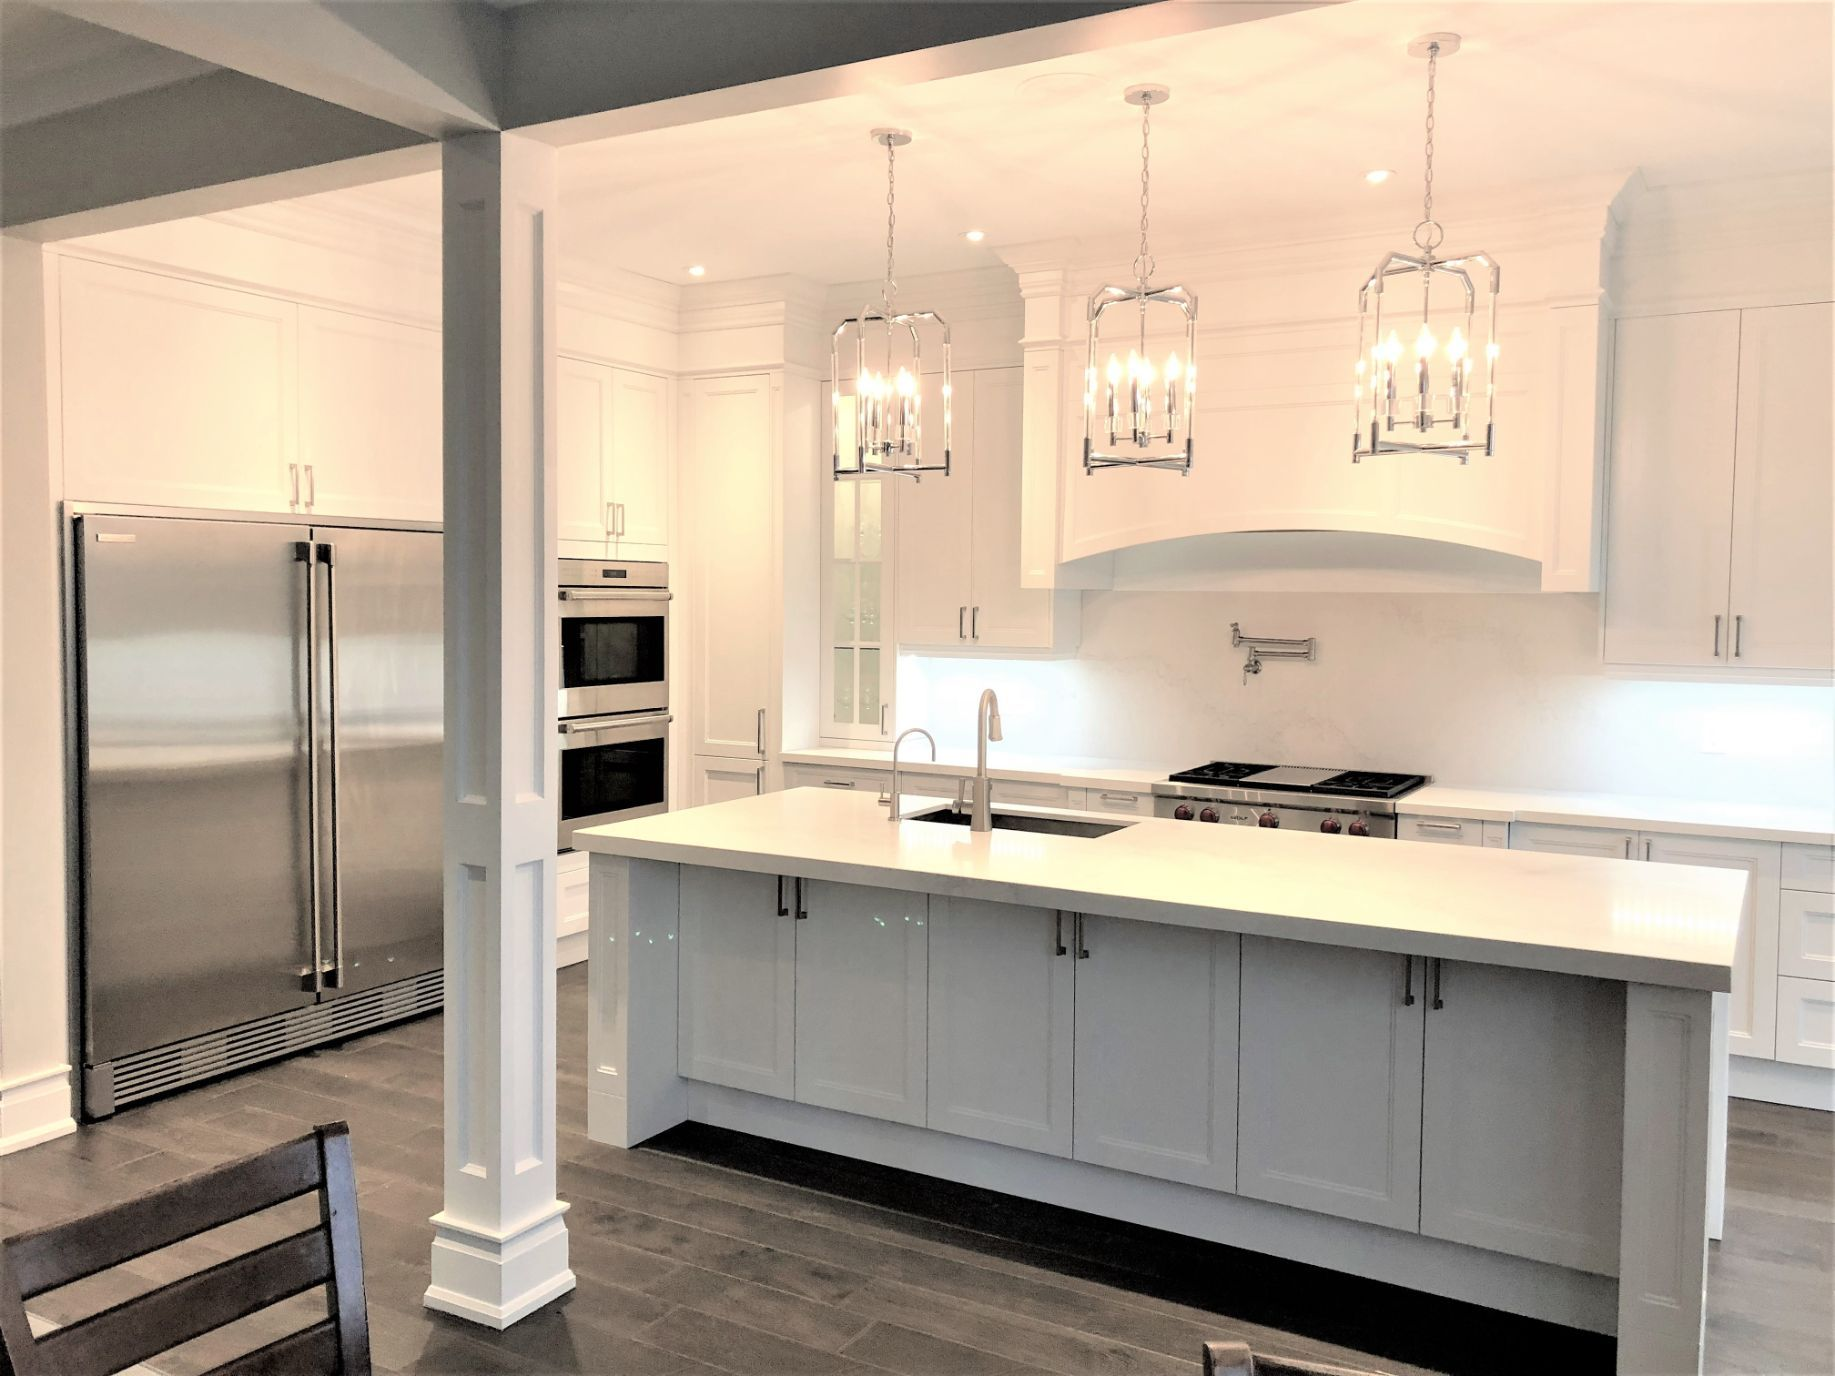 White kitchen with candle lights